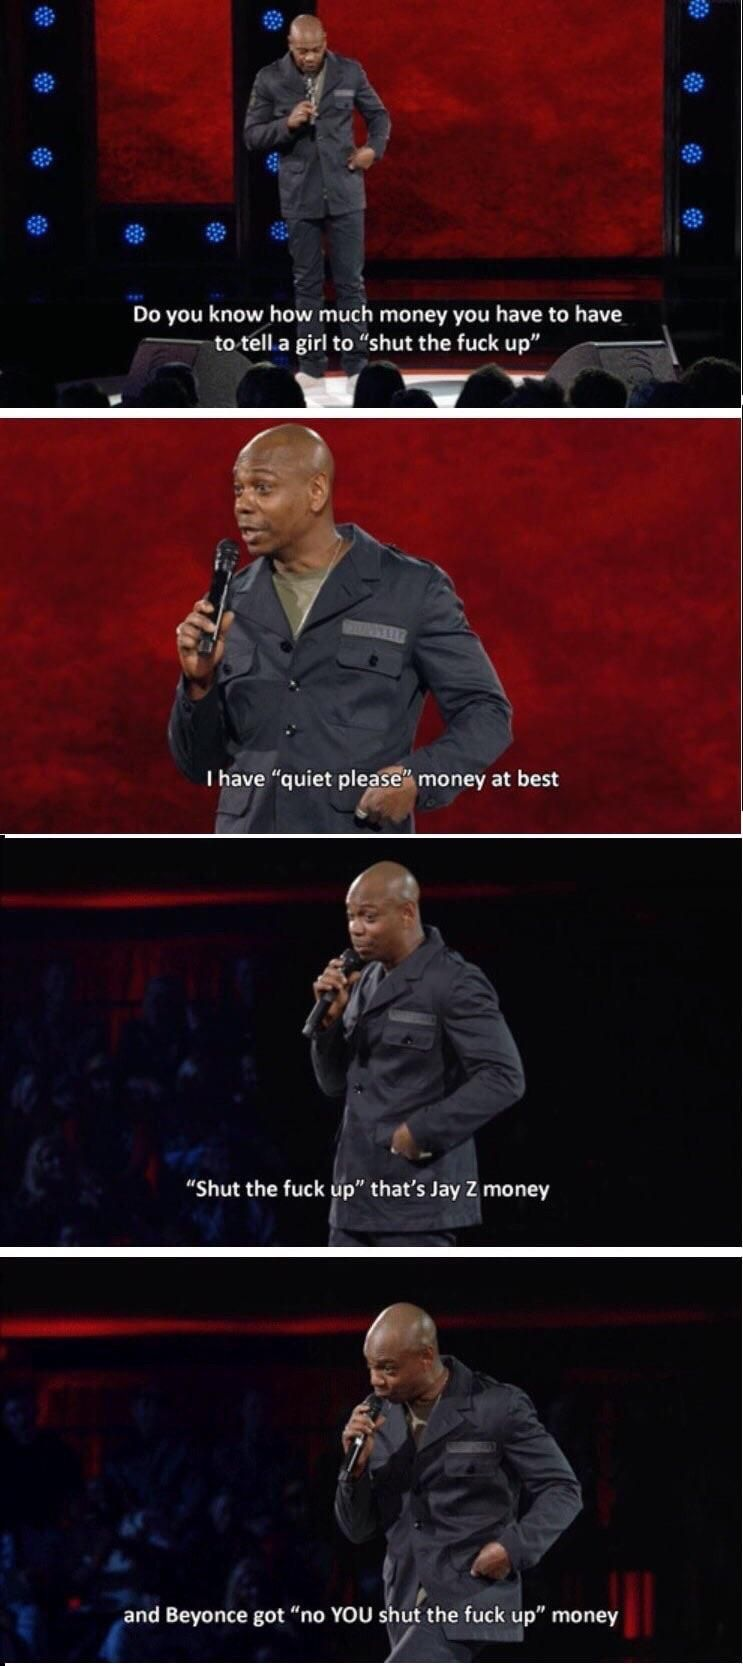 One of the gems from Dave Chappelle's Netflix special.